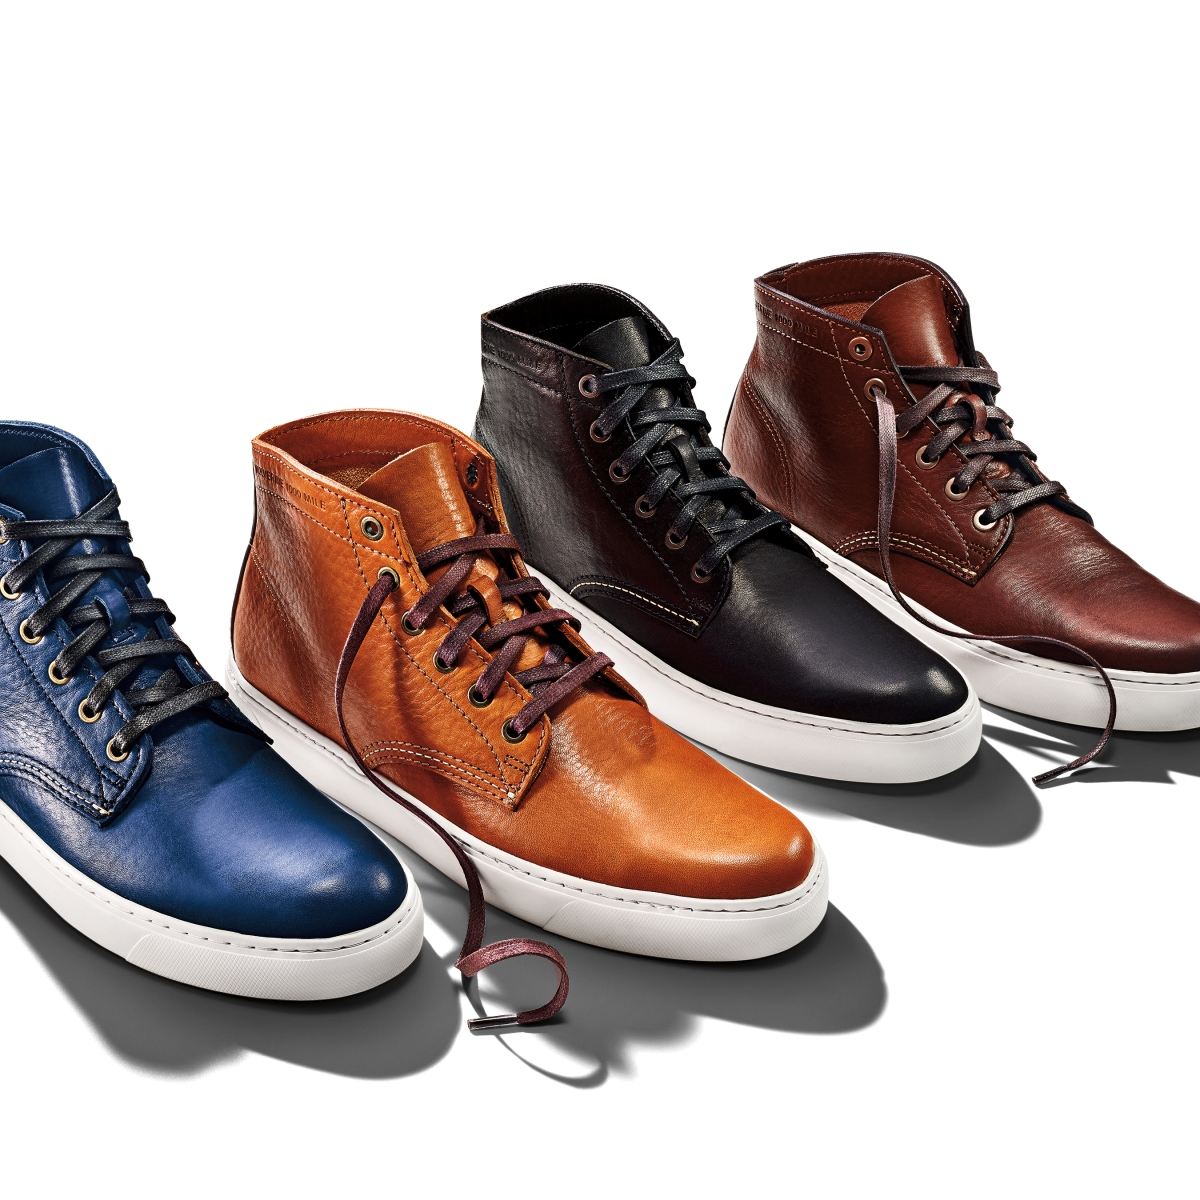 7241cd85ce0 Wolverine 1000 Mile Original Sneaker: The Stylish Shoes Every Guy Needs